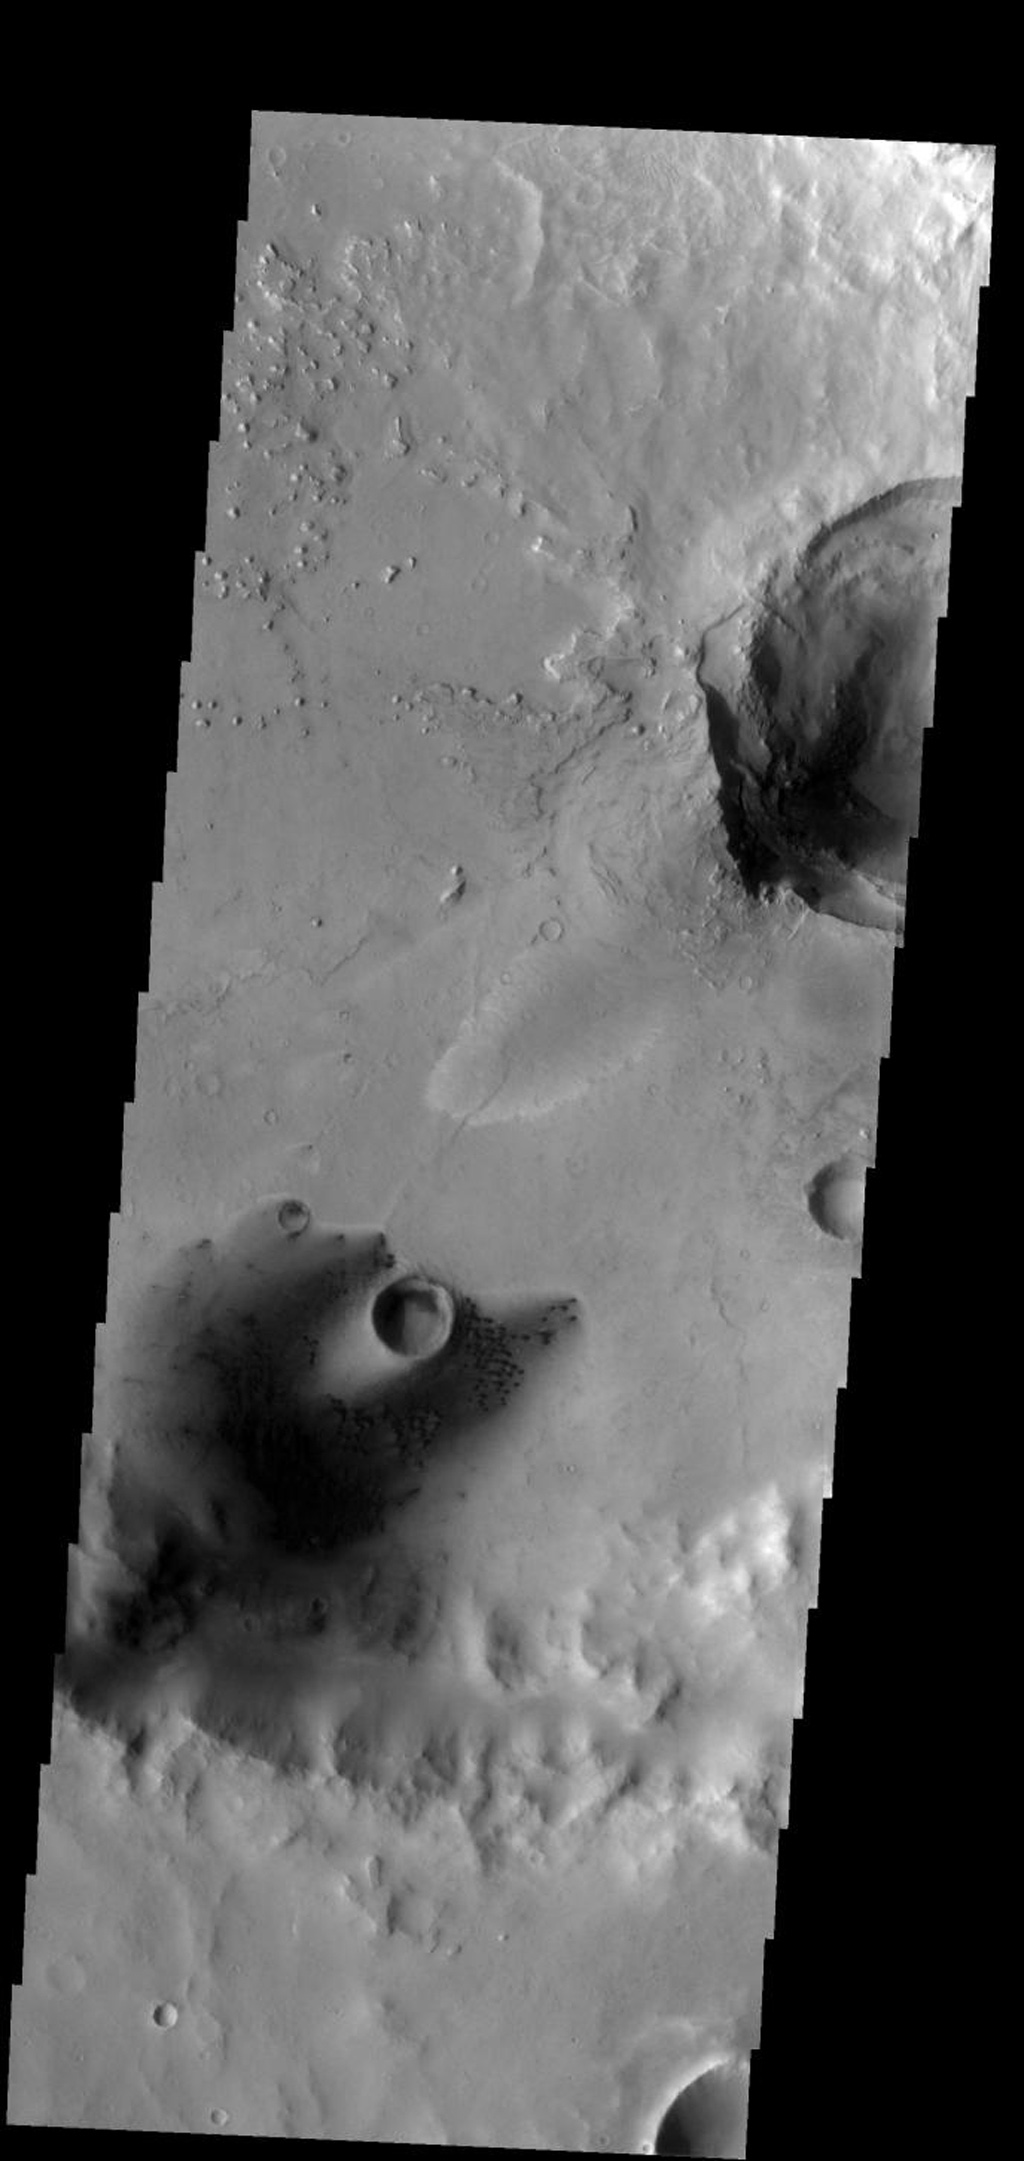 These small dunes occur on the floor of an unnamed crater in Arabia Terra on Mars as seen by NASA's 2001 Mars Odyssey spacecraft.